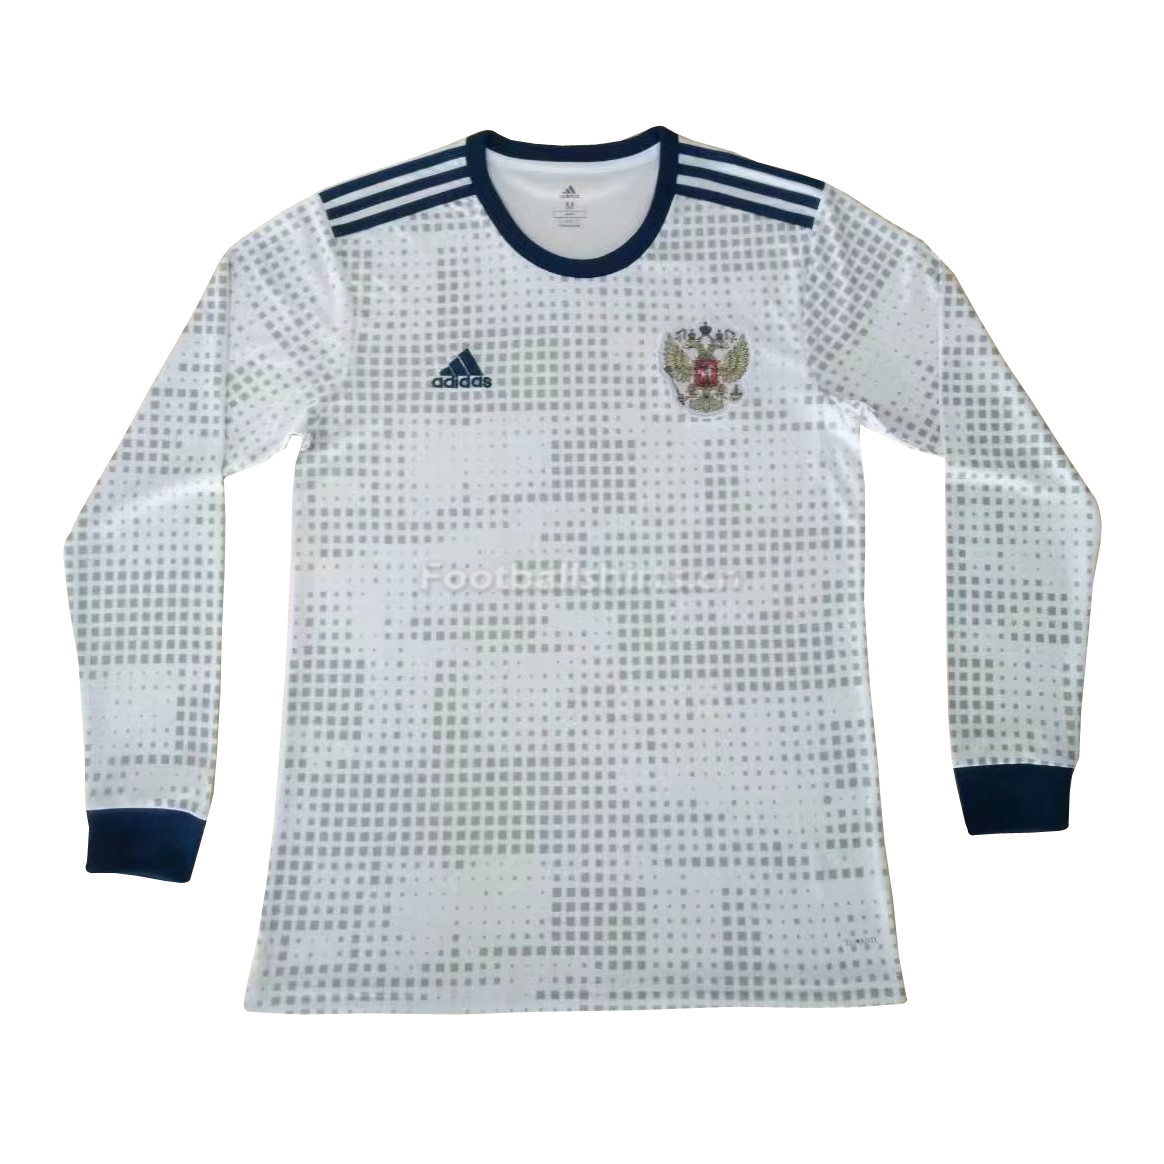 Russia 2018 World Cup Away Long Sleeve Soccer Jersey